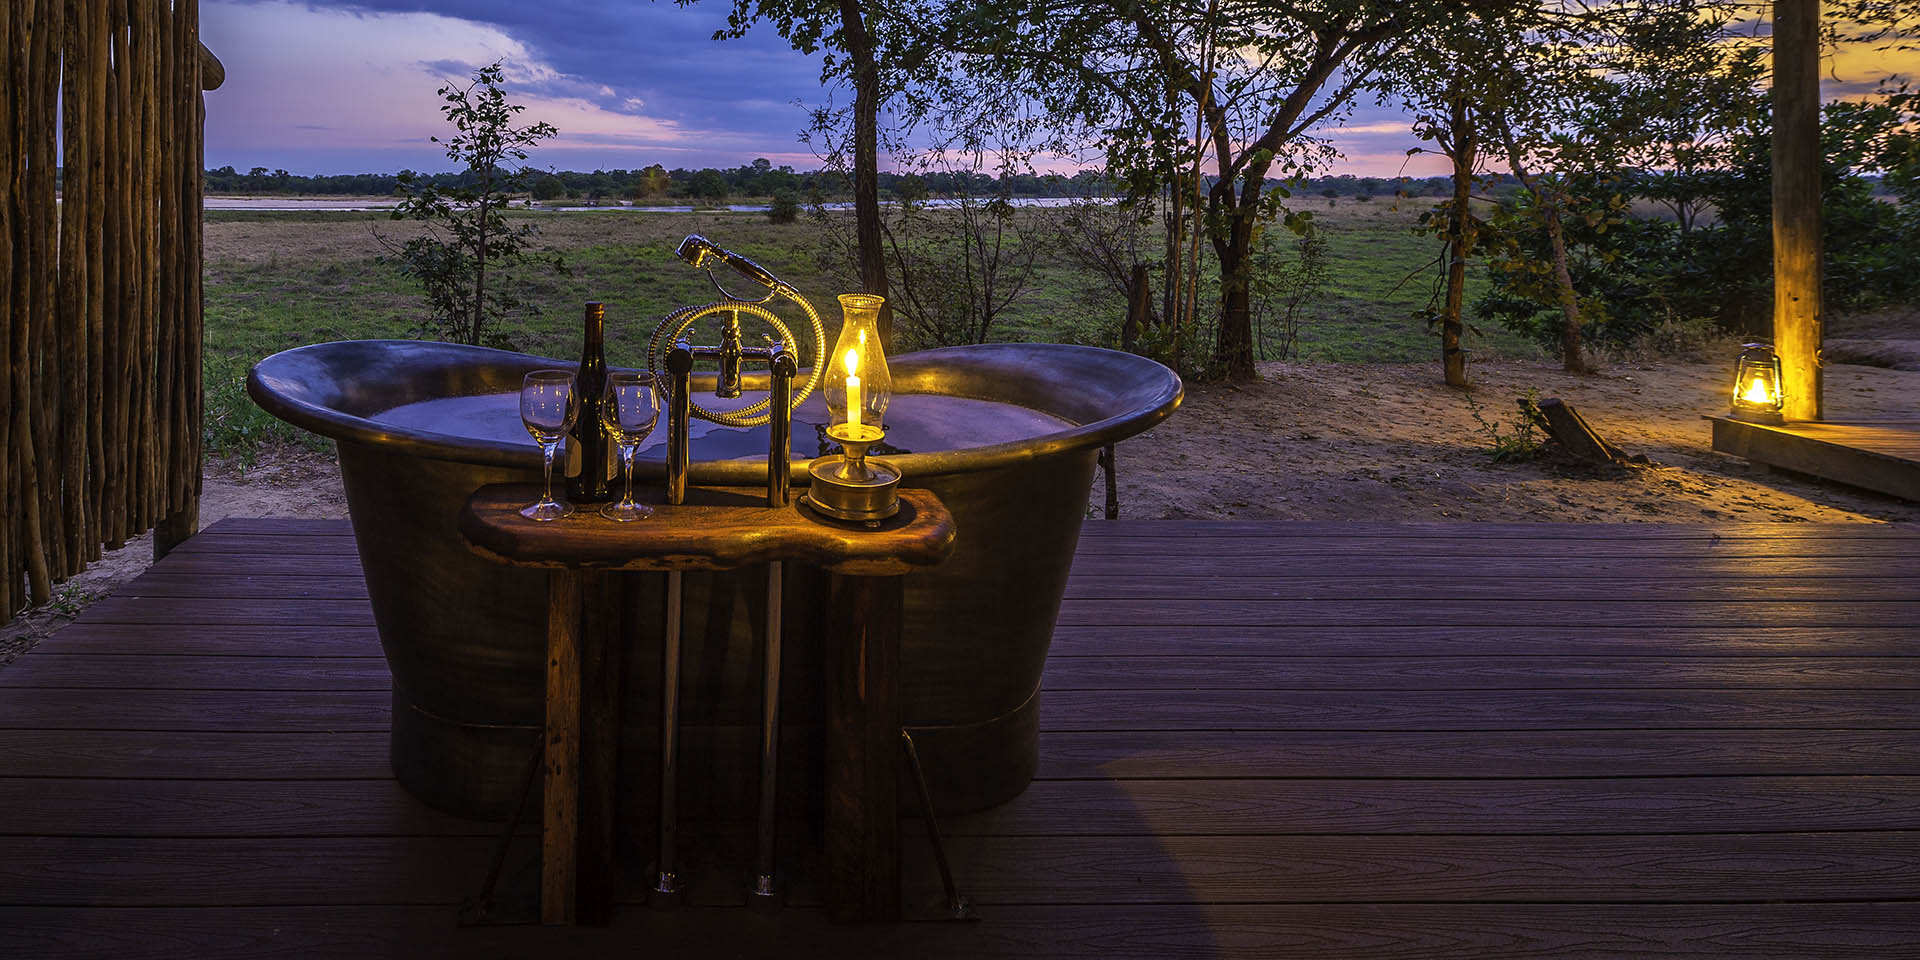 honeymoon-malawian-style-malawi-adventures-experiences-holidays-specialist-tour-operator-zambia-mozambique-africa